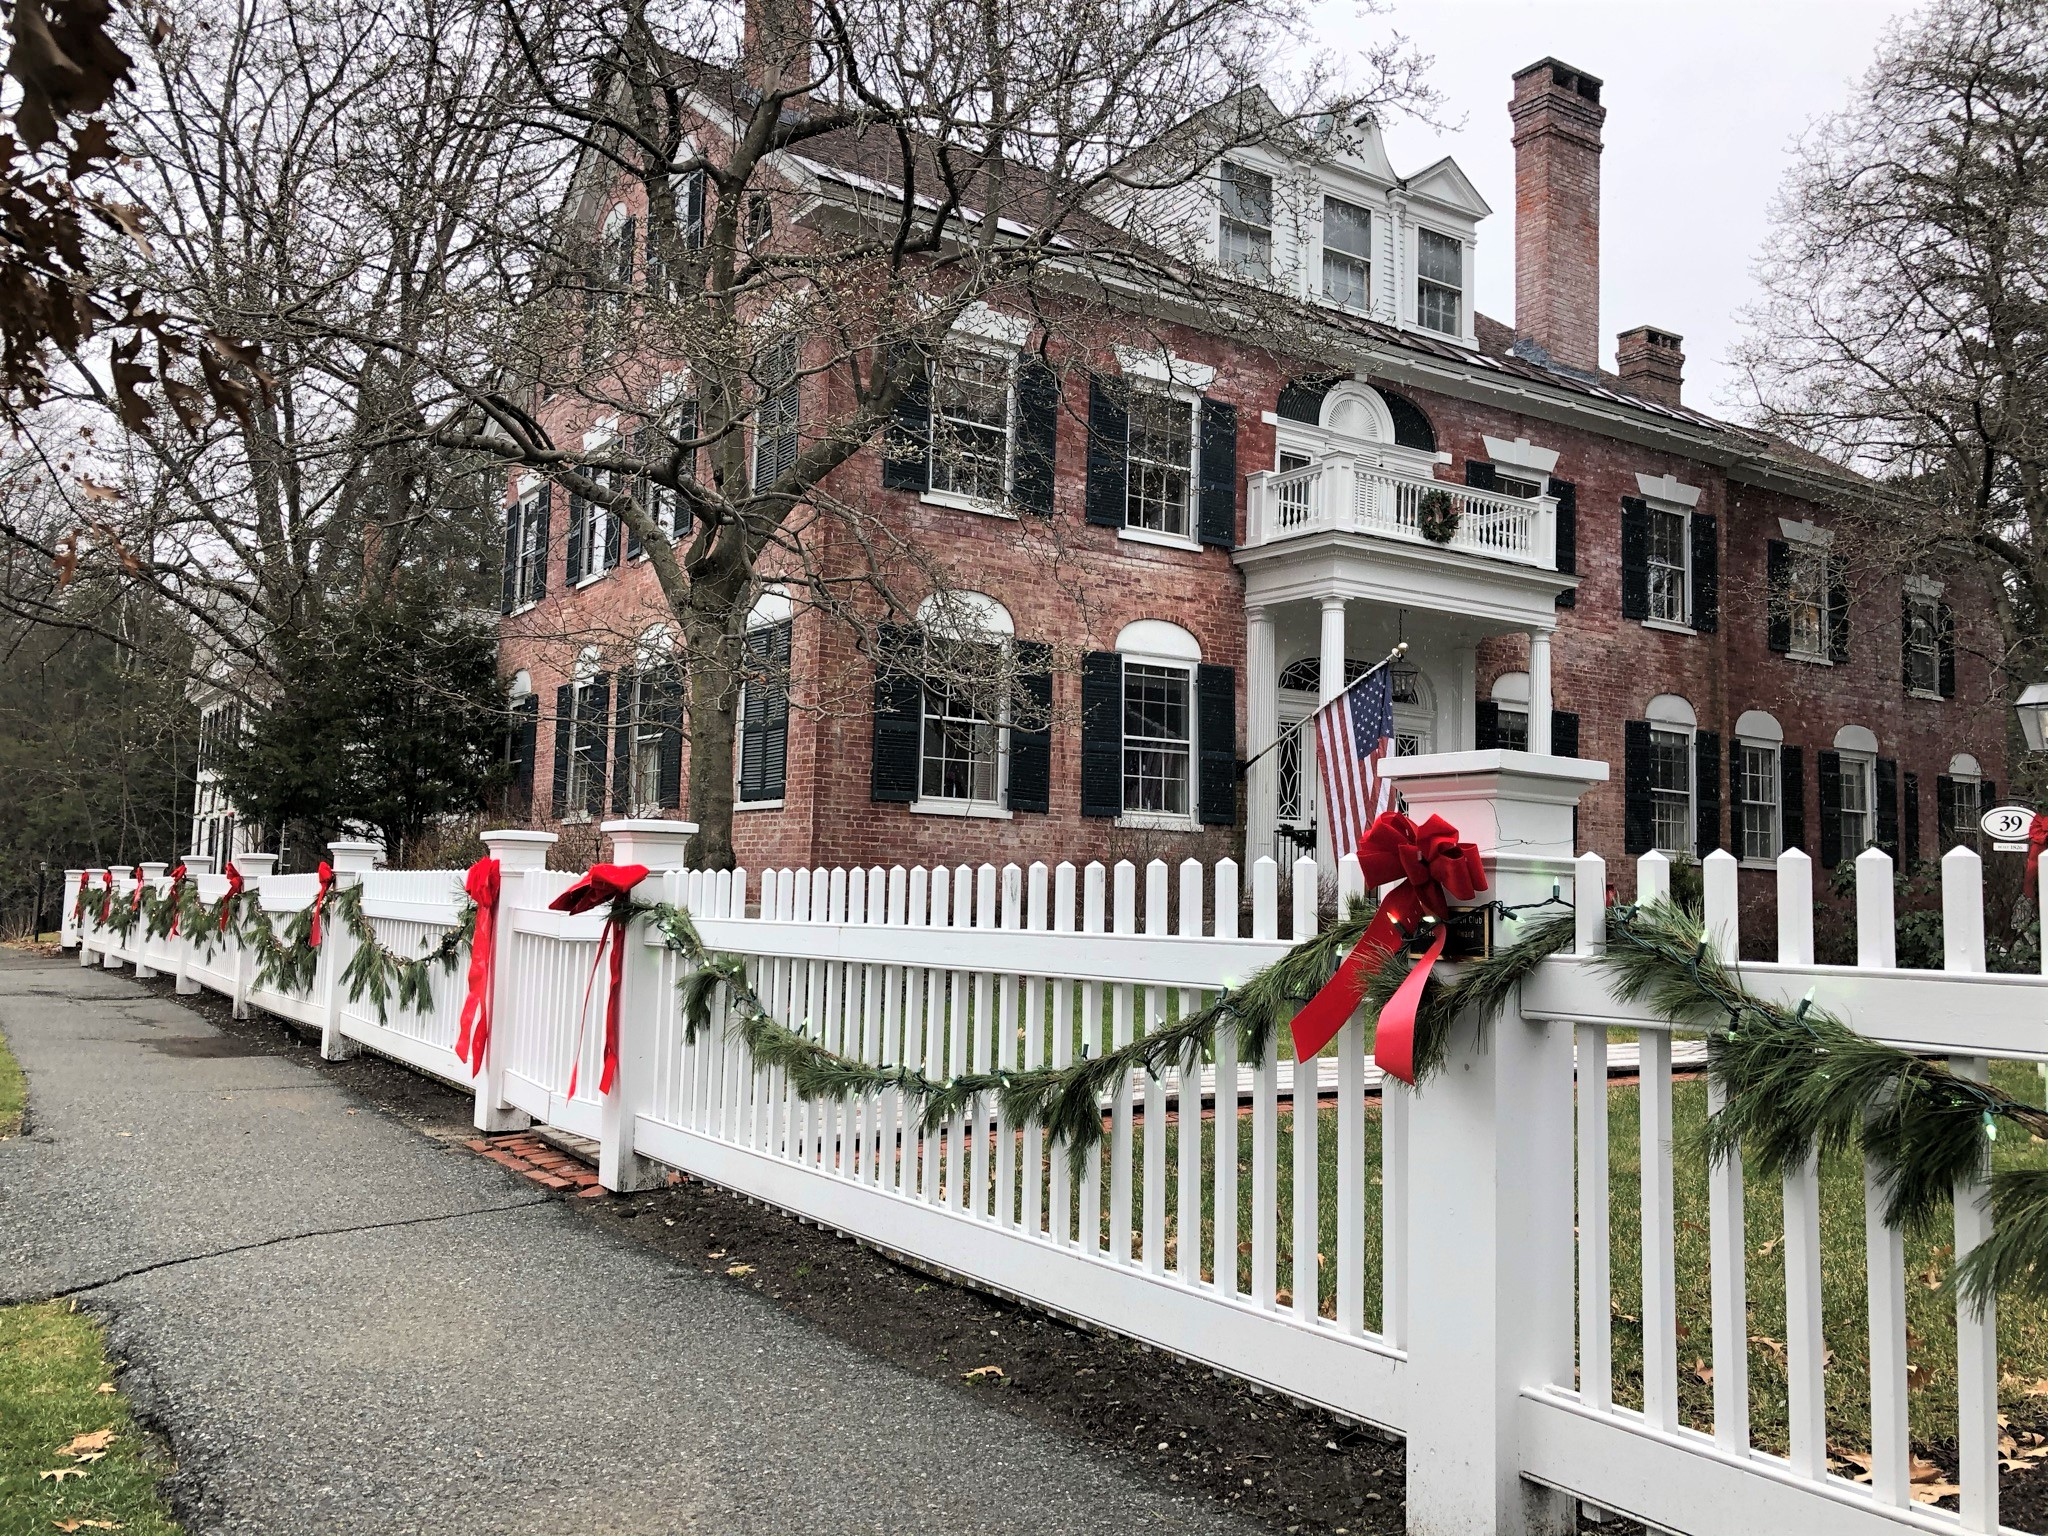 Christmas decorations in the town of Woodstock, Vermont